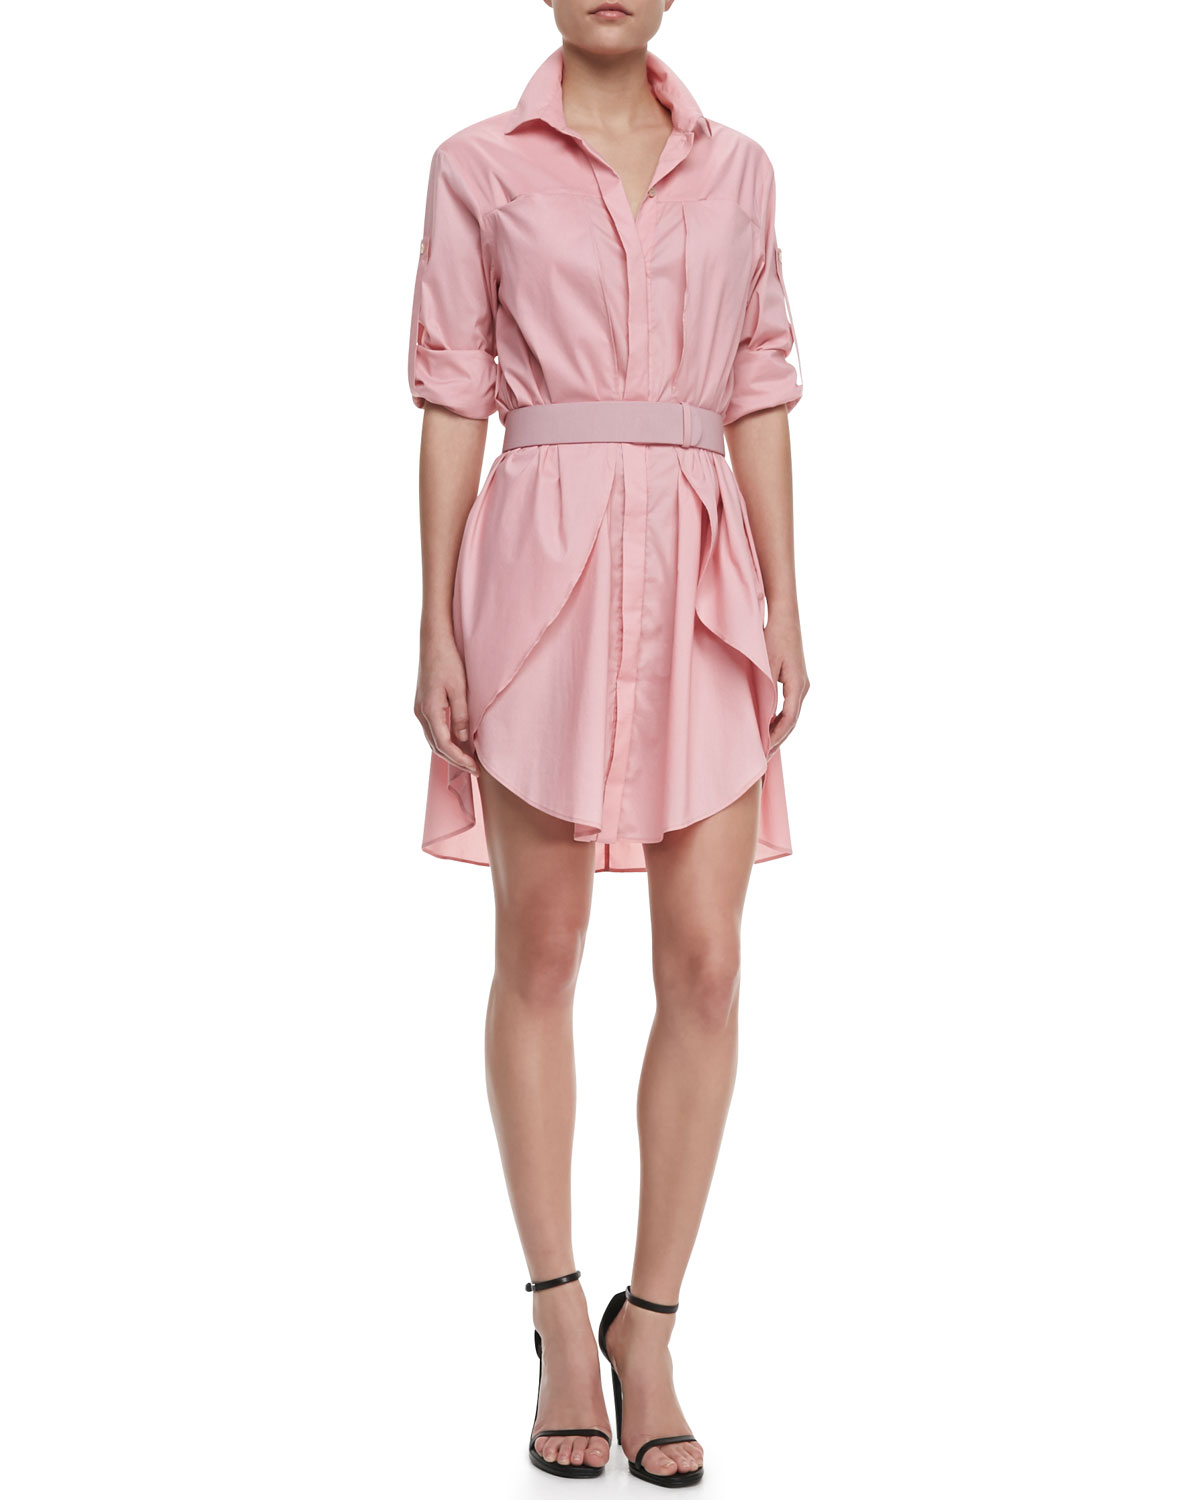 Halston heritage long slv voile shirt in pink cameo lyst for Halston heritage shirt dress